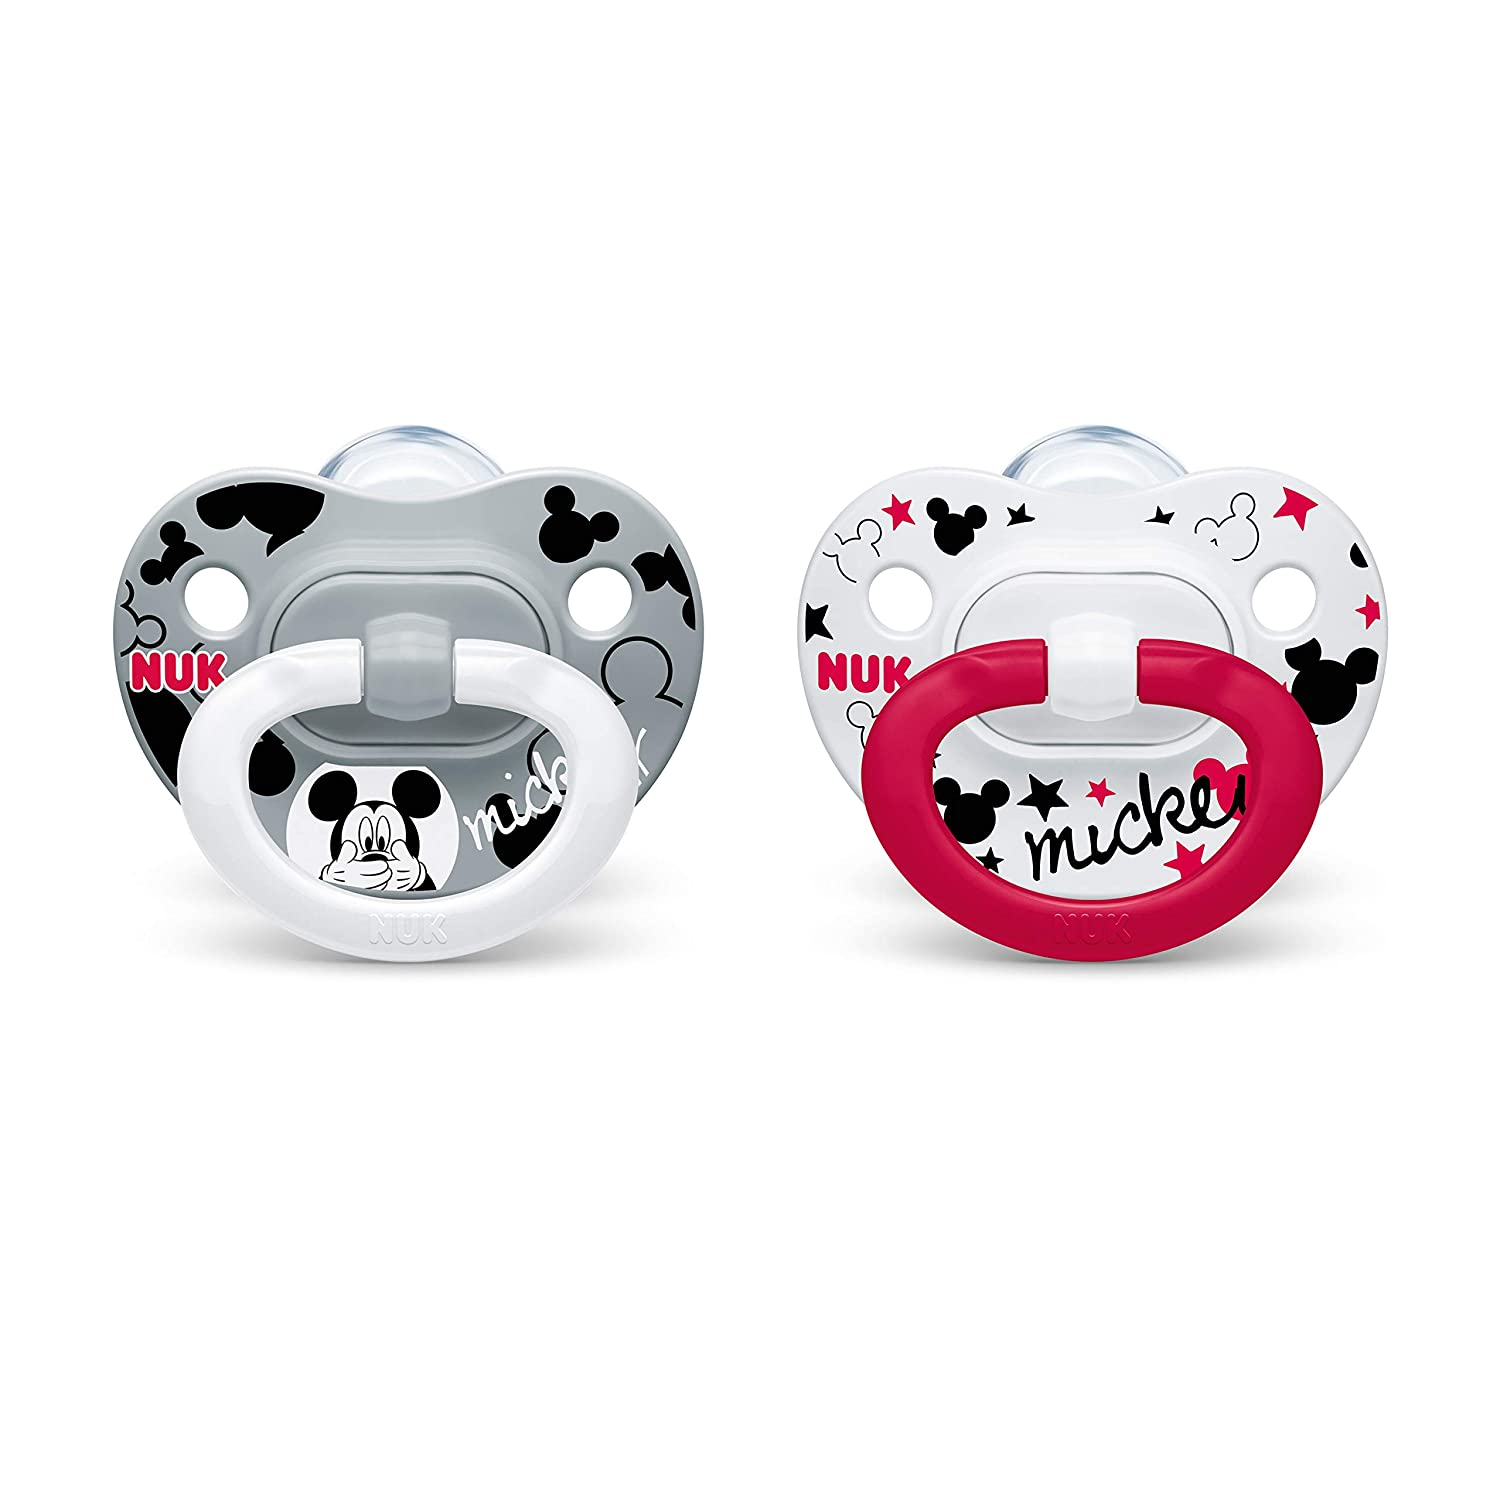 NUK Disney Mickey Mouse Orthodontic Pacifiers, 0-6 Months, 2-Pack